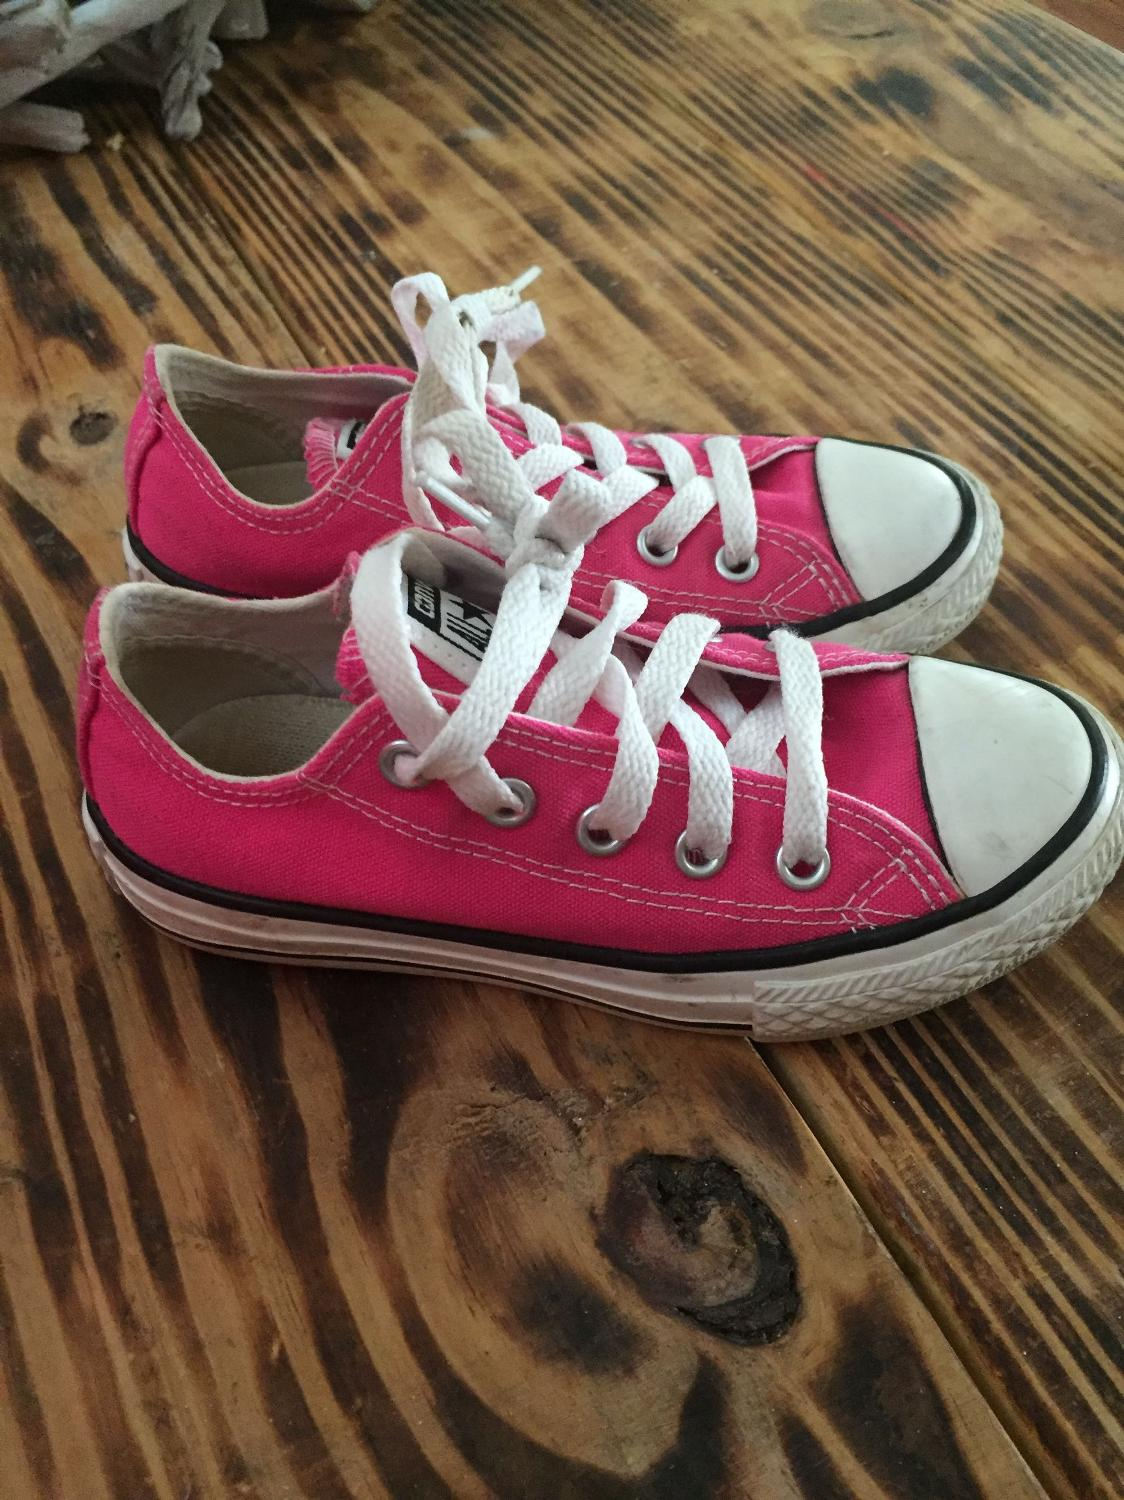 ... Euc Converse All Stars for sale in Mountain Brook, Alabama for 2017